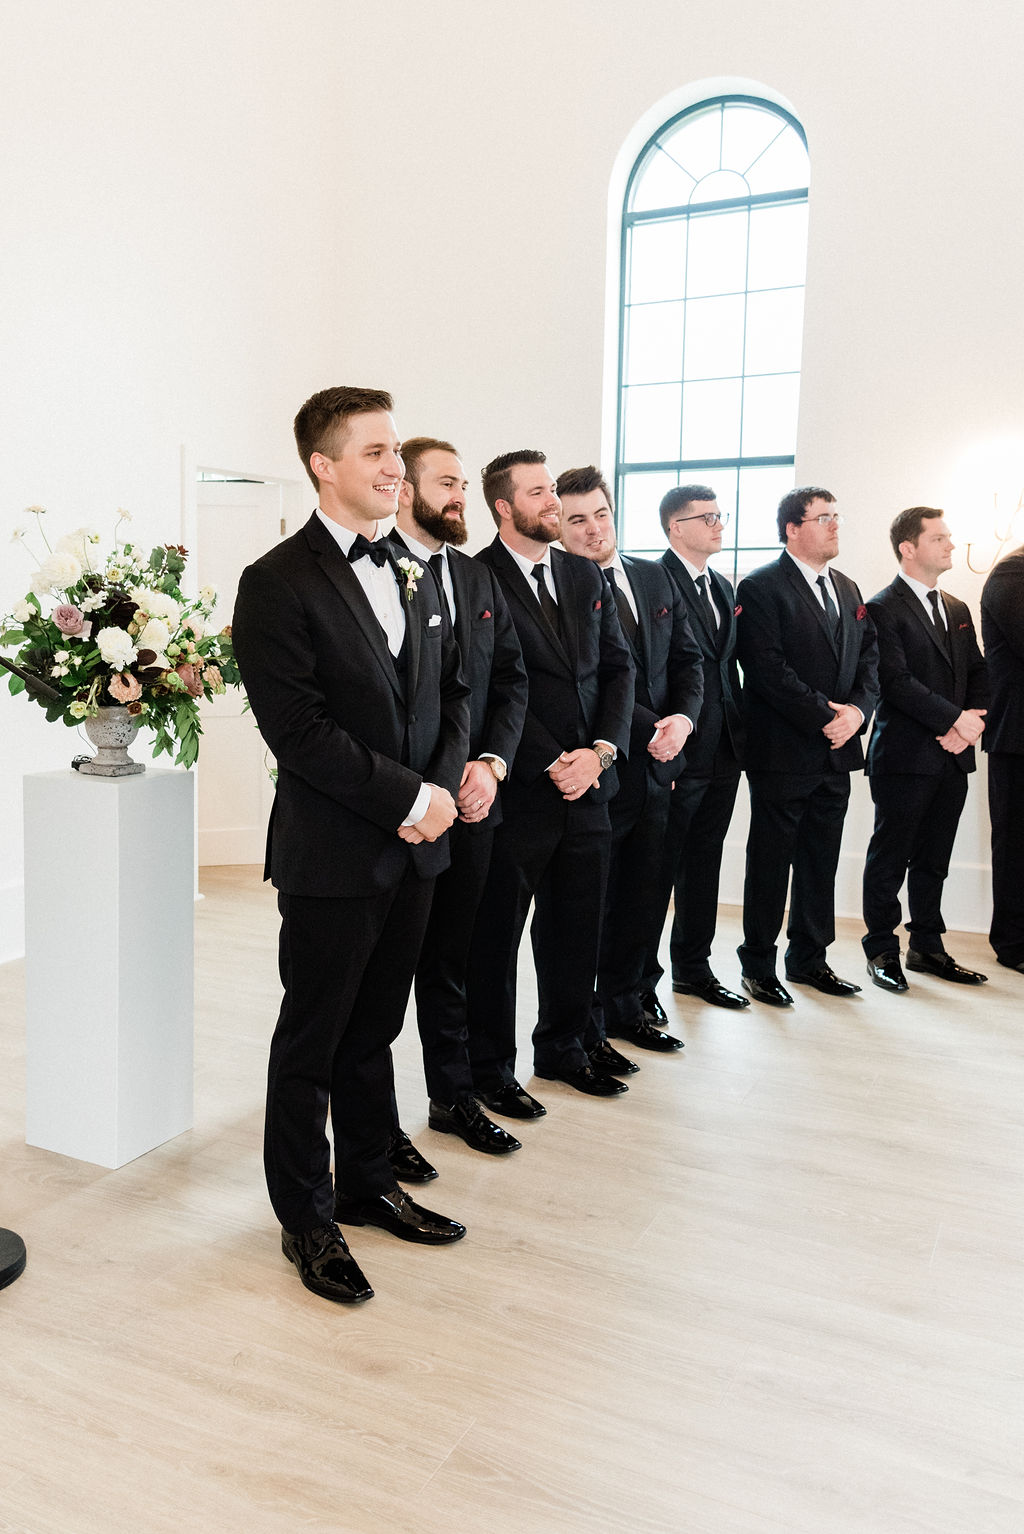 Groom and groomsmen smiling during a wedding